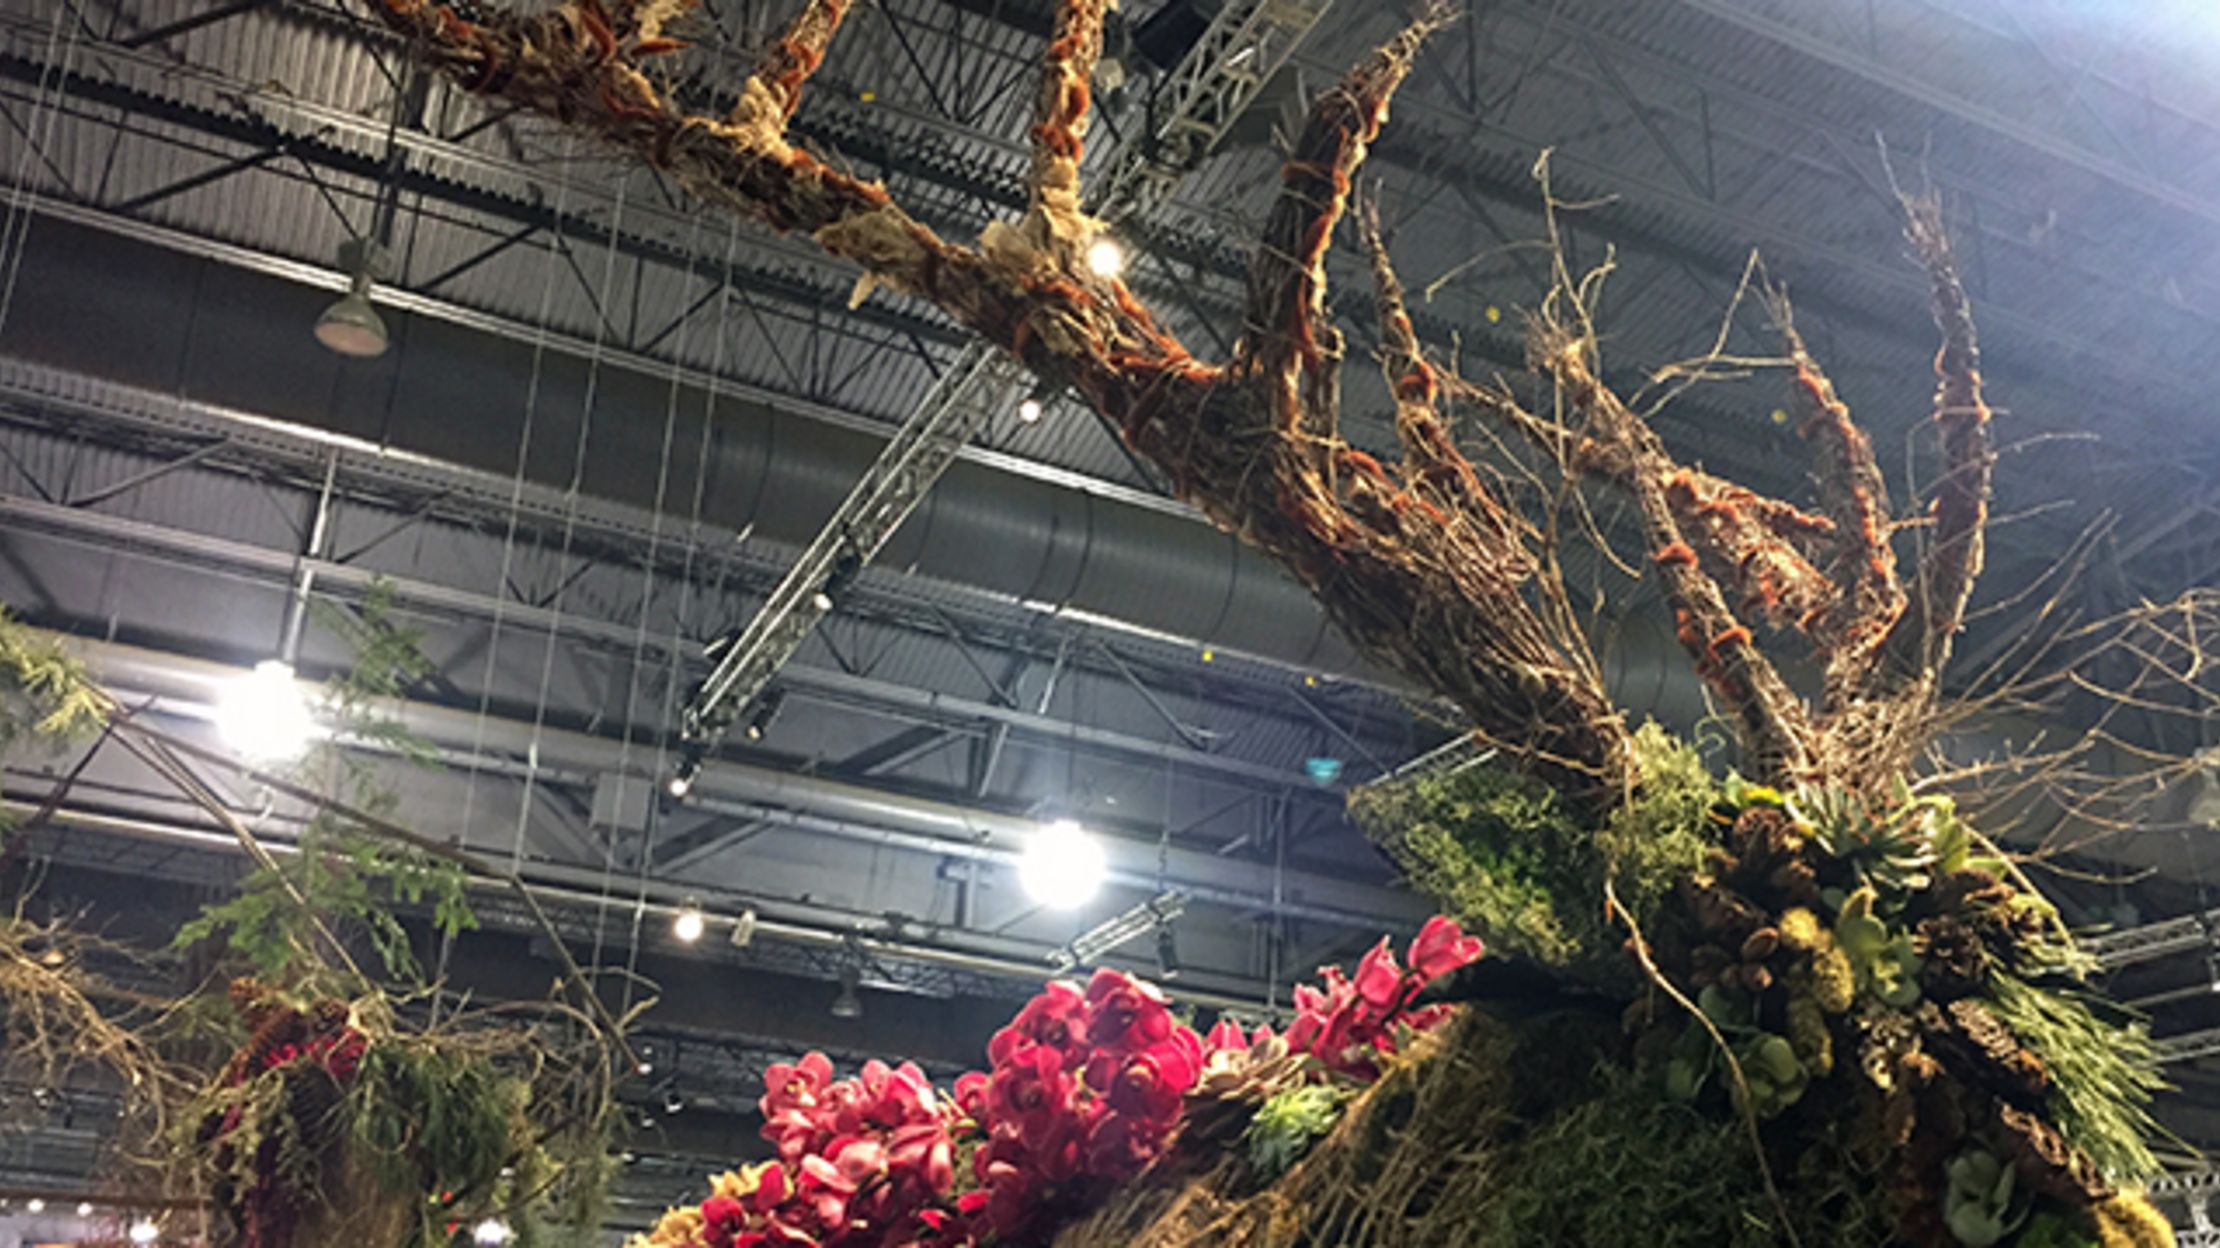 8 Amazing Displays From The 2016 Philadelphia Flower Show Mental Floss